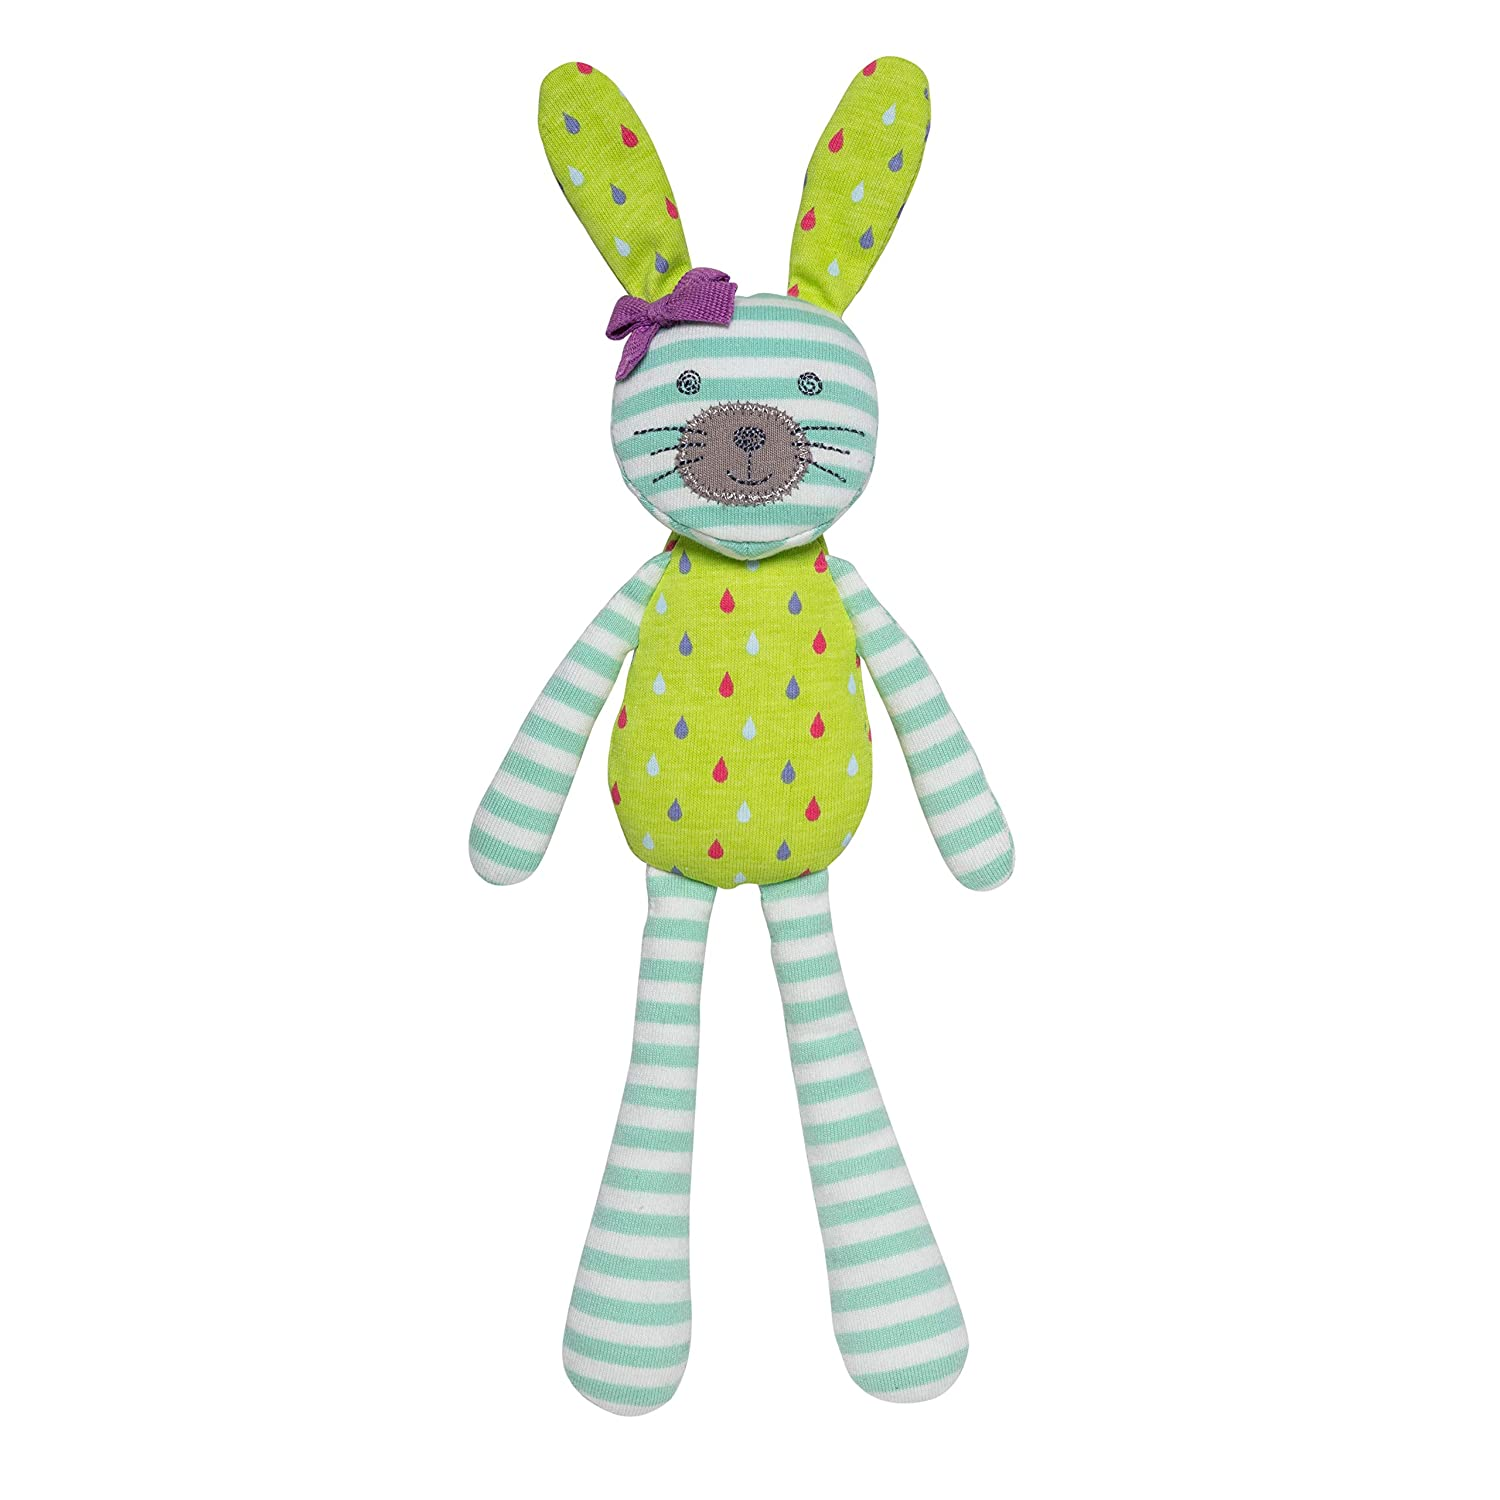 Apple Park Organic Farm Buddies - Spring Bunny Turquoise Stripe and Tear Drop Print Plush Baby Toy for Newborns, Infants, Toddlers - Hypoallergenic, 100% Organic Cotton